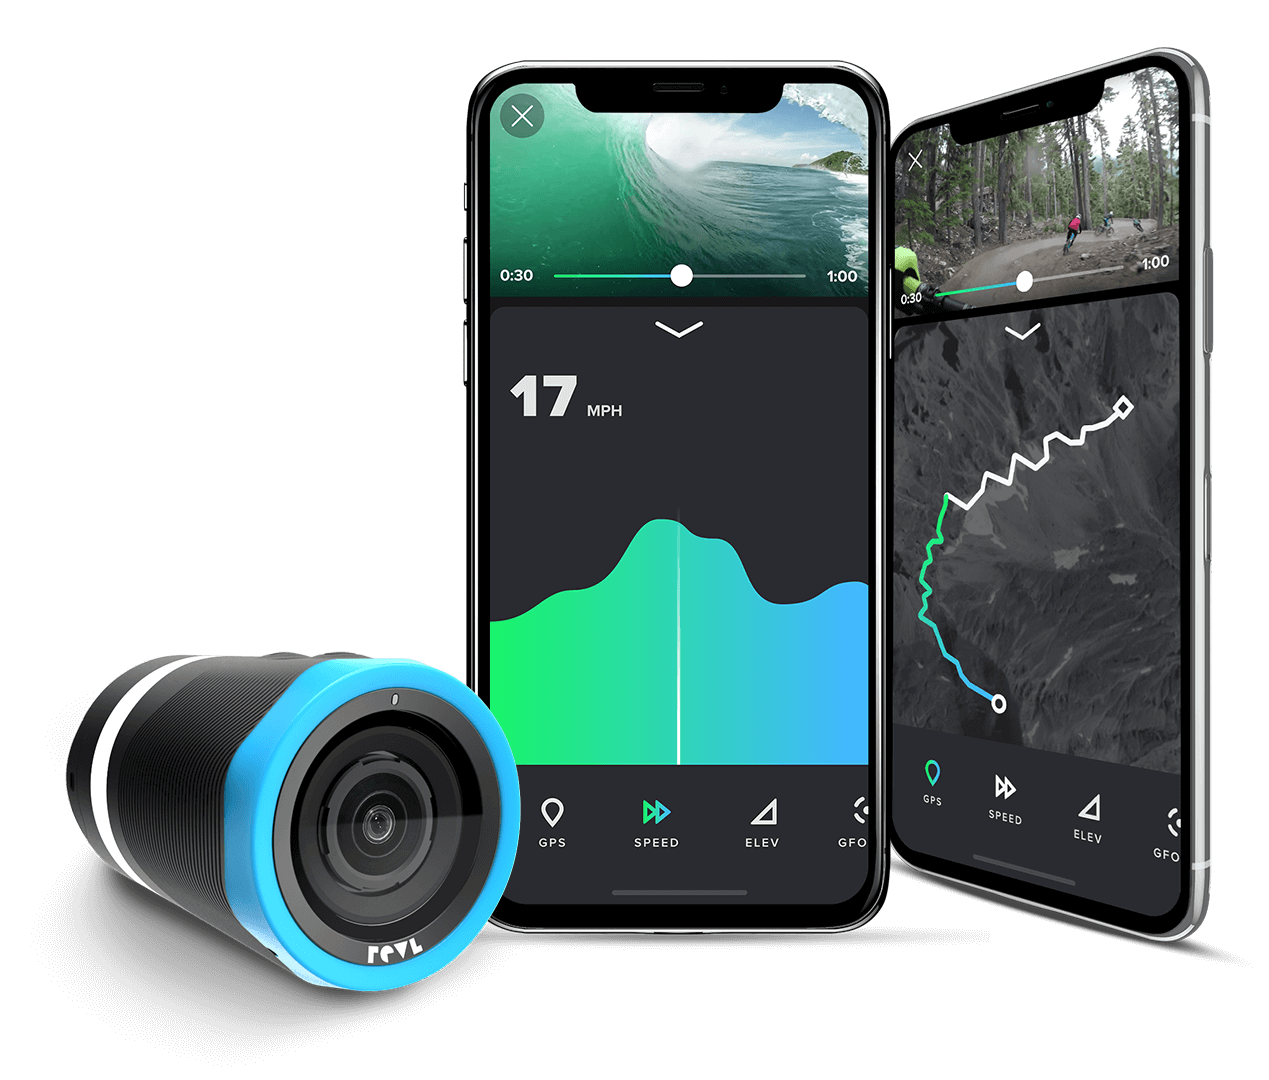 Meet Arc - The stabilized action camera that edits for you.